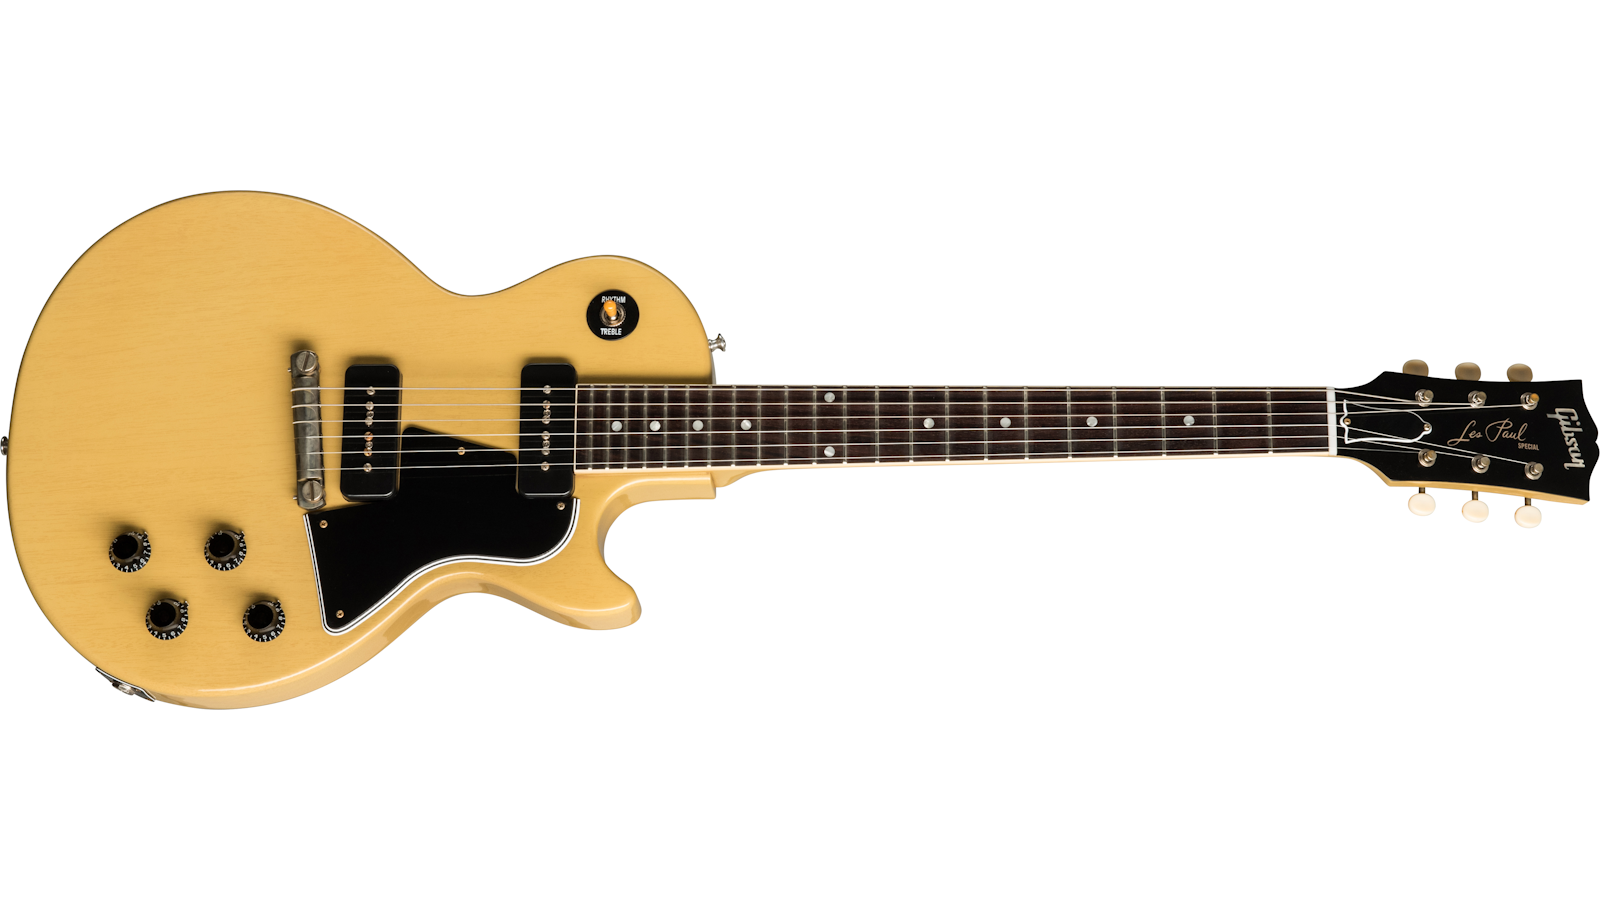 1957 Les Paul Special Single Cut Reissue